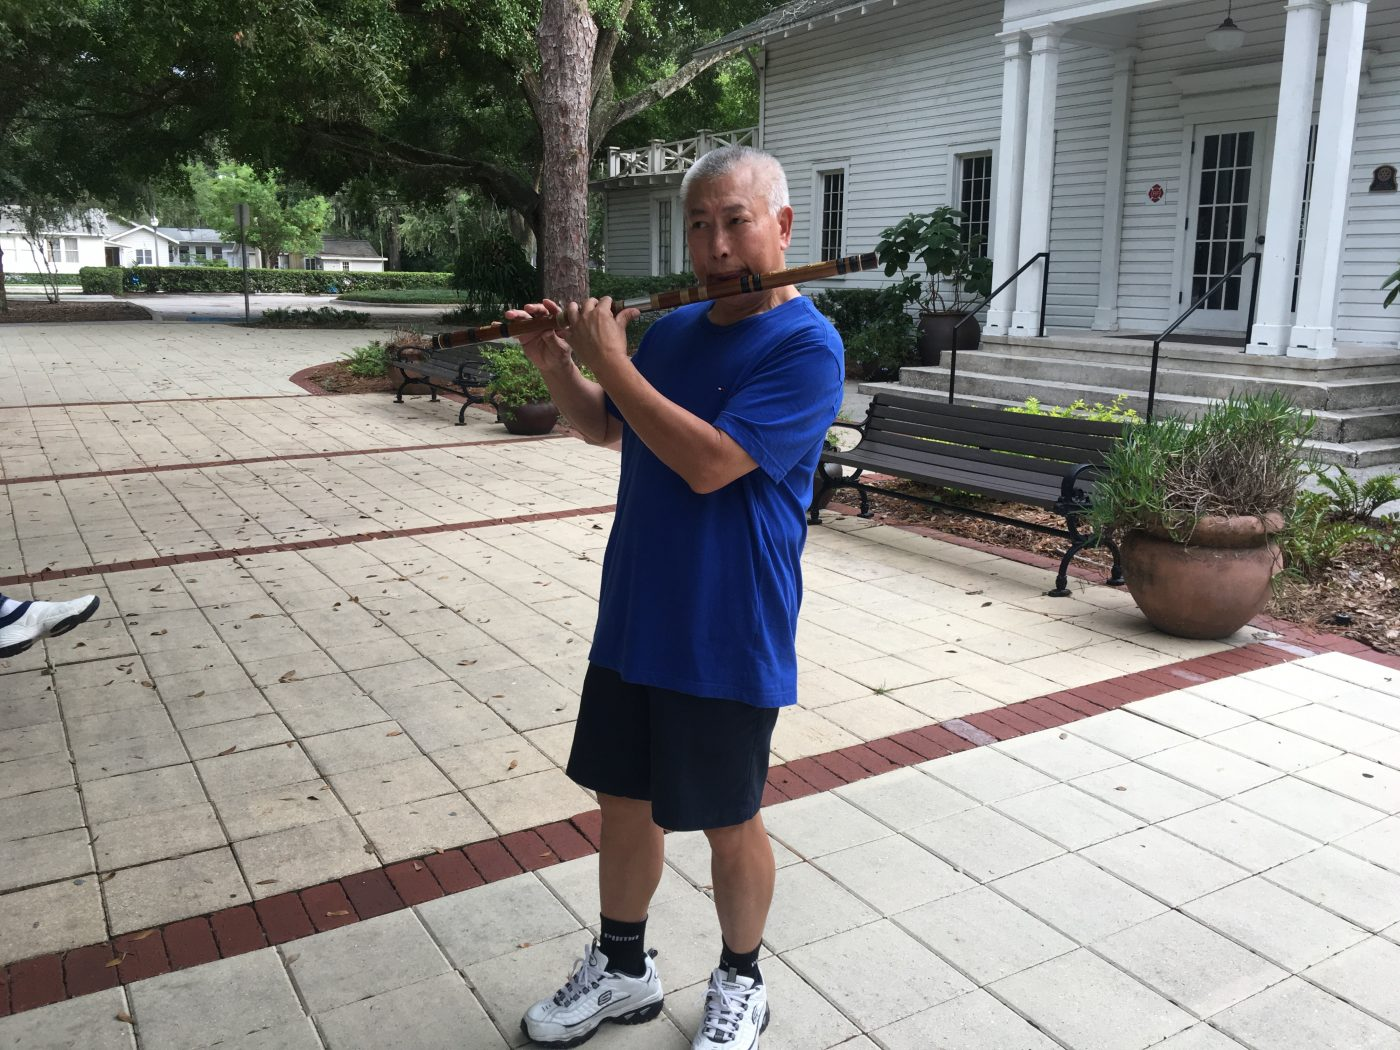 CHangkui Tang playing Dizi, Chinese Transverse Flute, in front of Windermere Town Hall of Windermere, FL (credit: Windermere Sun-Susan Sun Nunamaker)